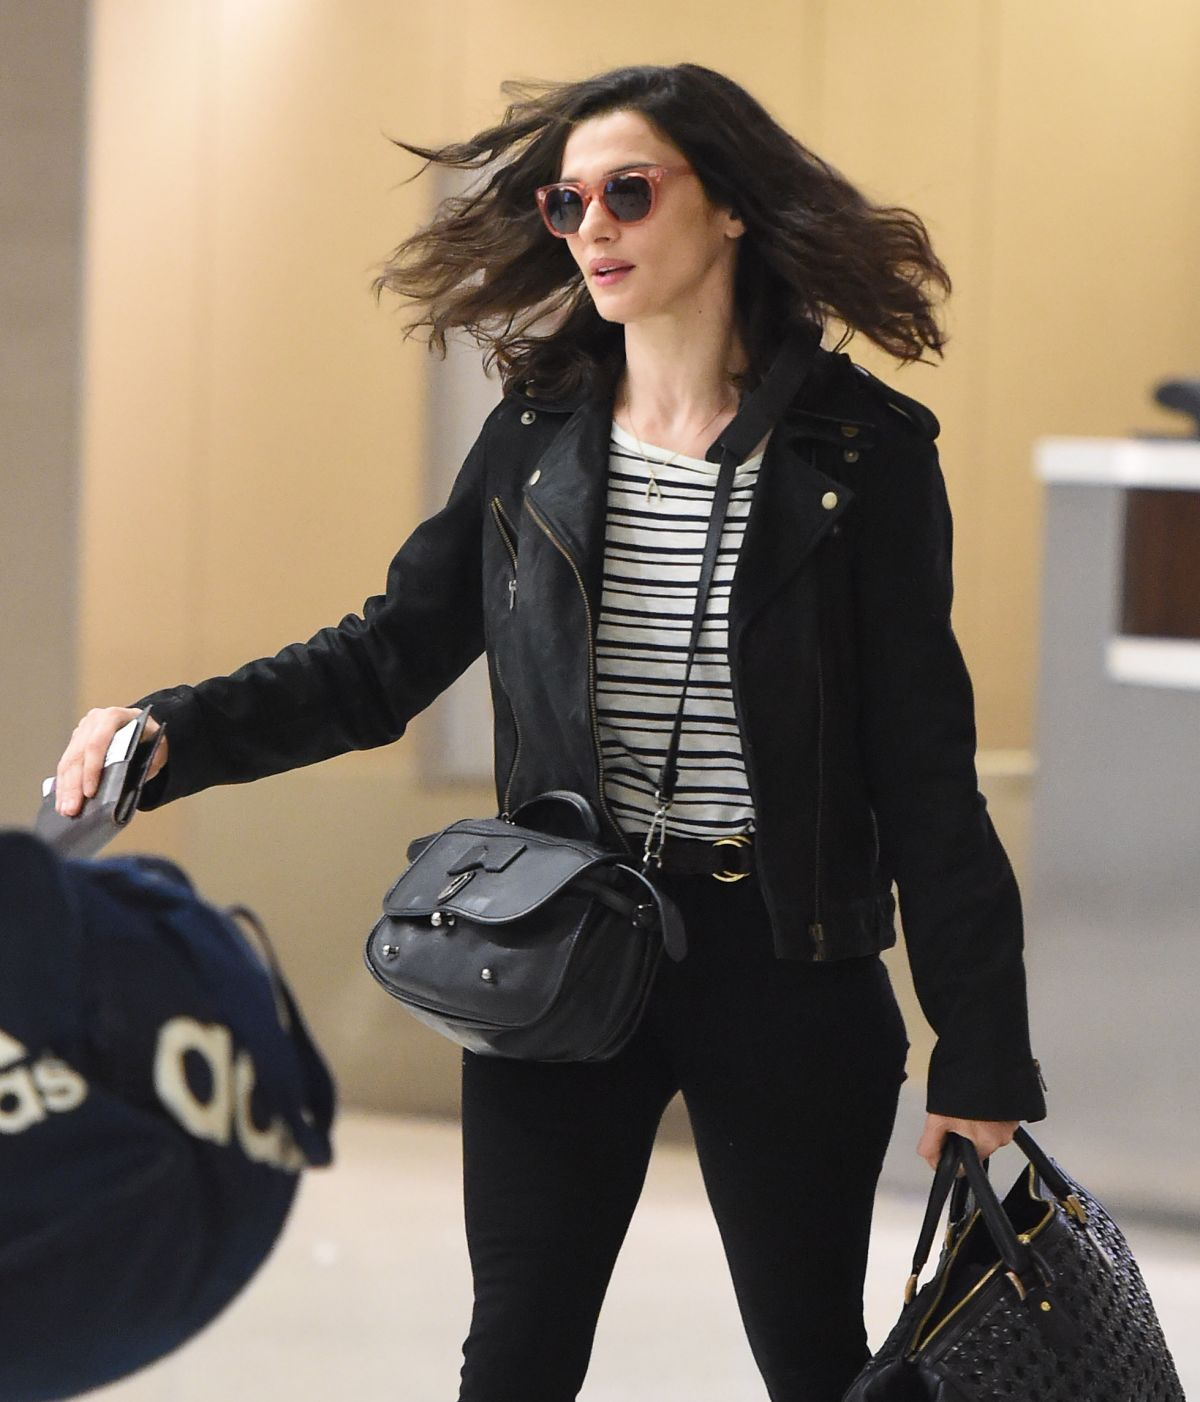 RACHEL WEISZ Arrives at JFK Airport in New York 05/31/2015